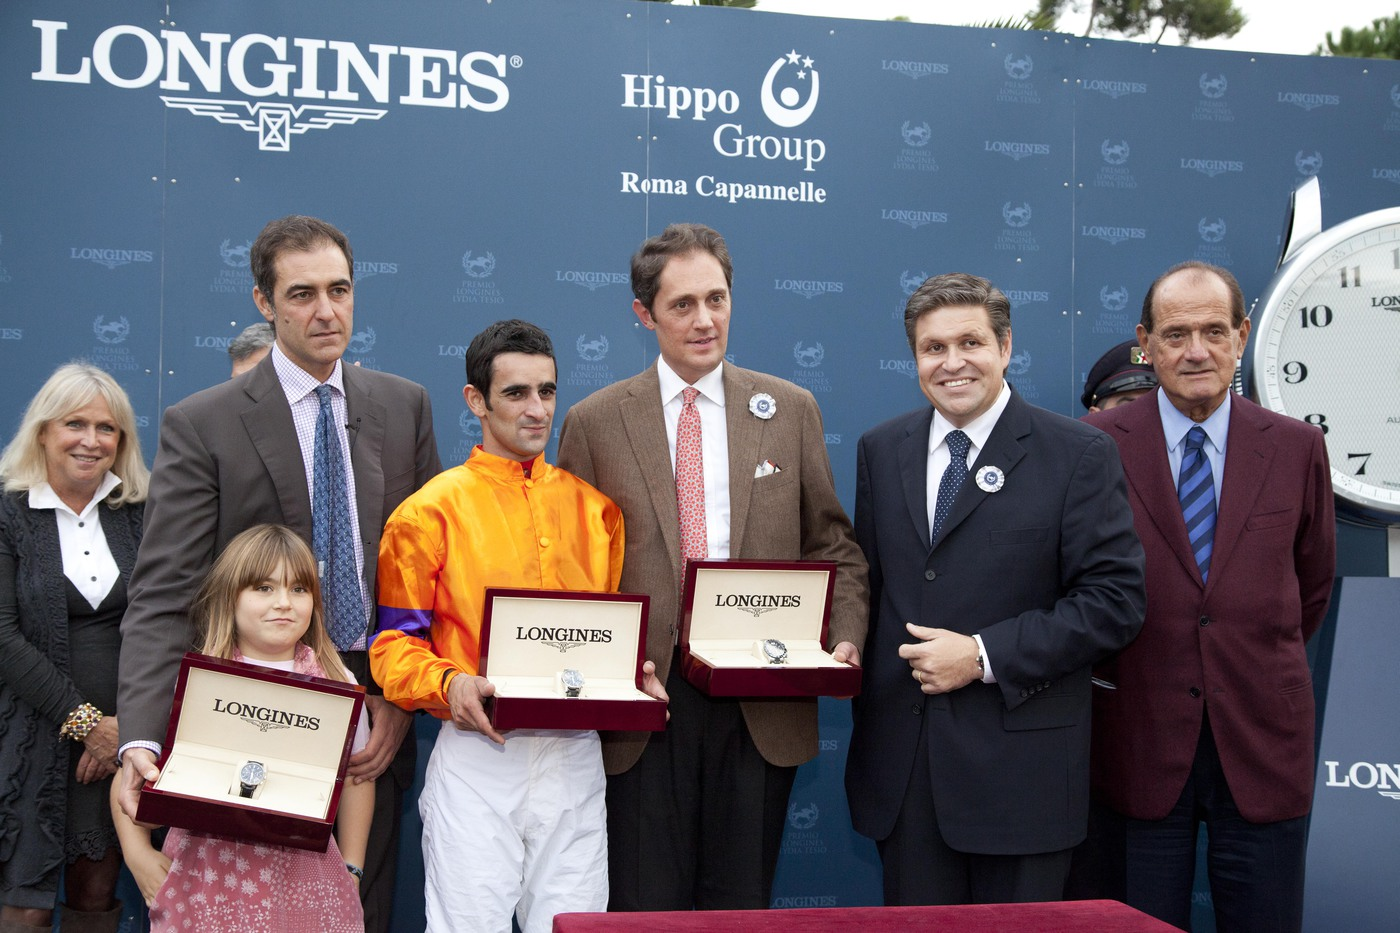 Longines Flat Racing Event: Fabio Branca wins the Grand Prix Longines Lydia Tesio on Quiza Quiza Quiza 4